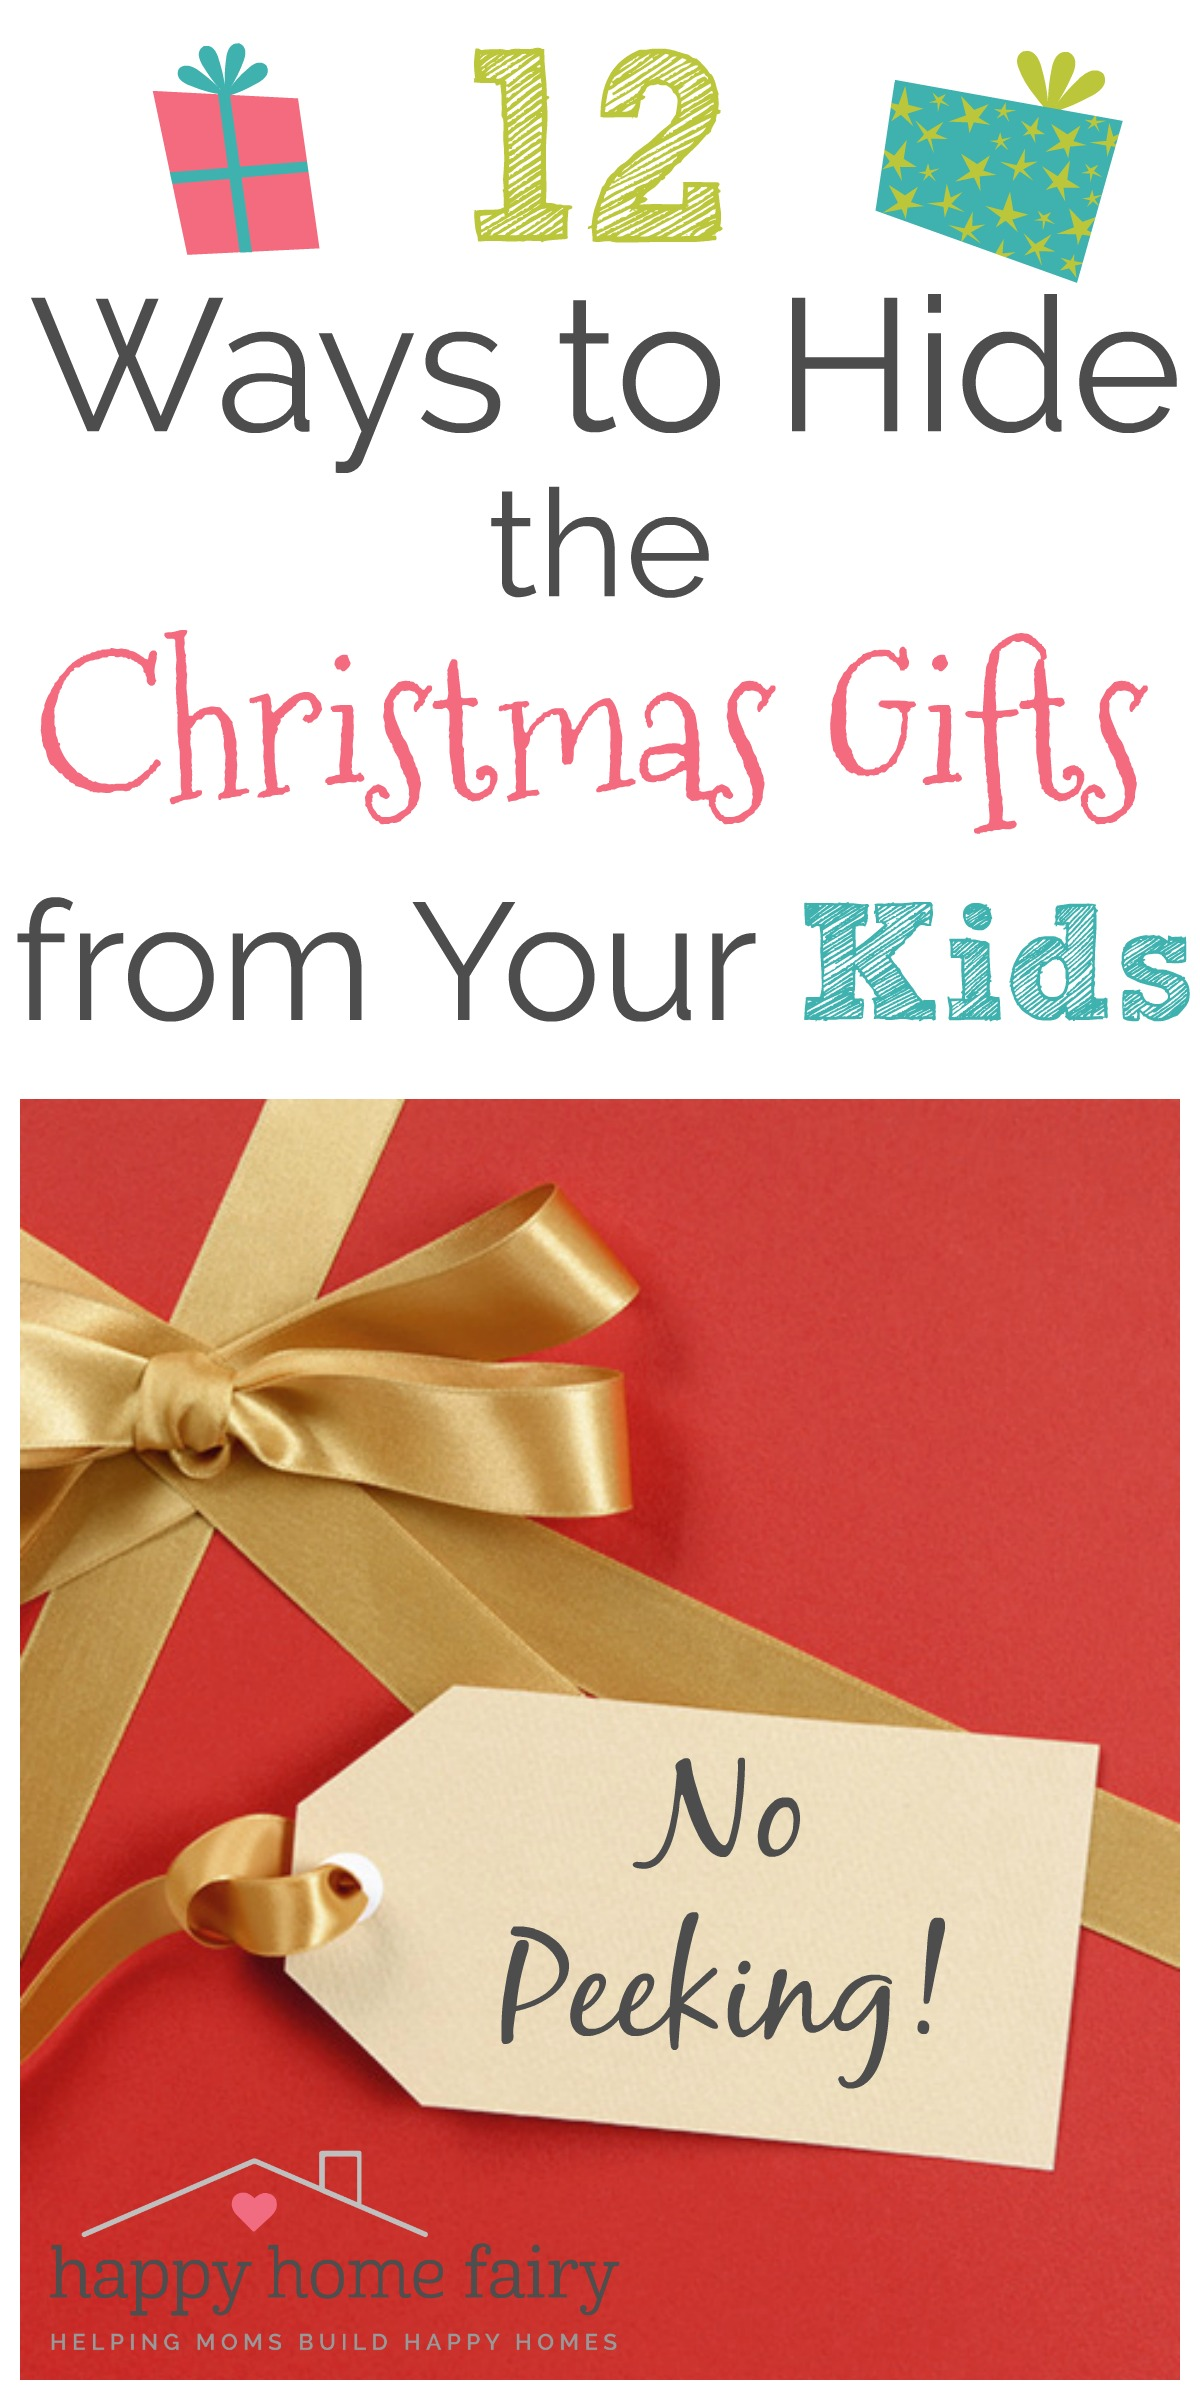 12 Ways to Hide the Christmas Gifts from Your Kids - Happy Home Fairy